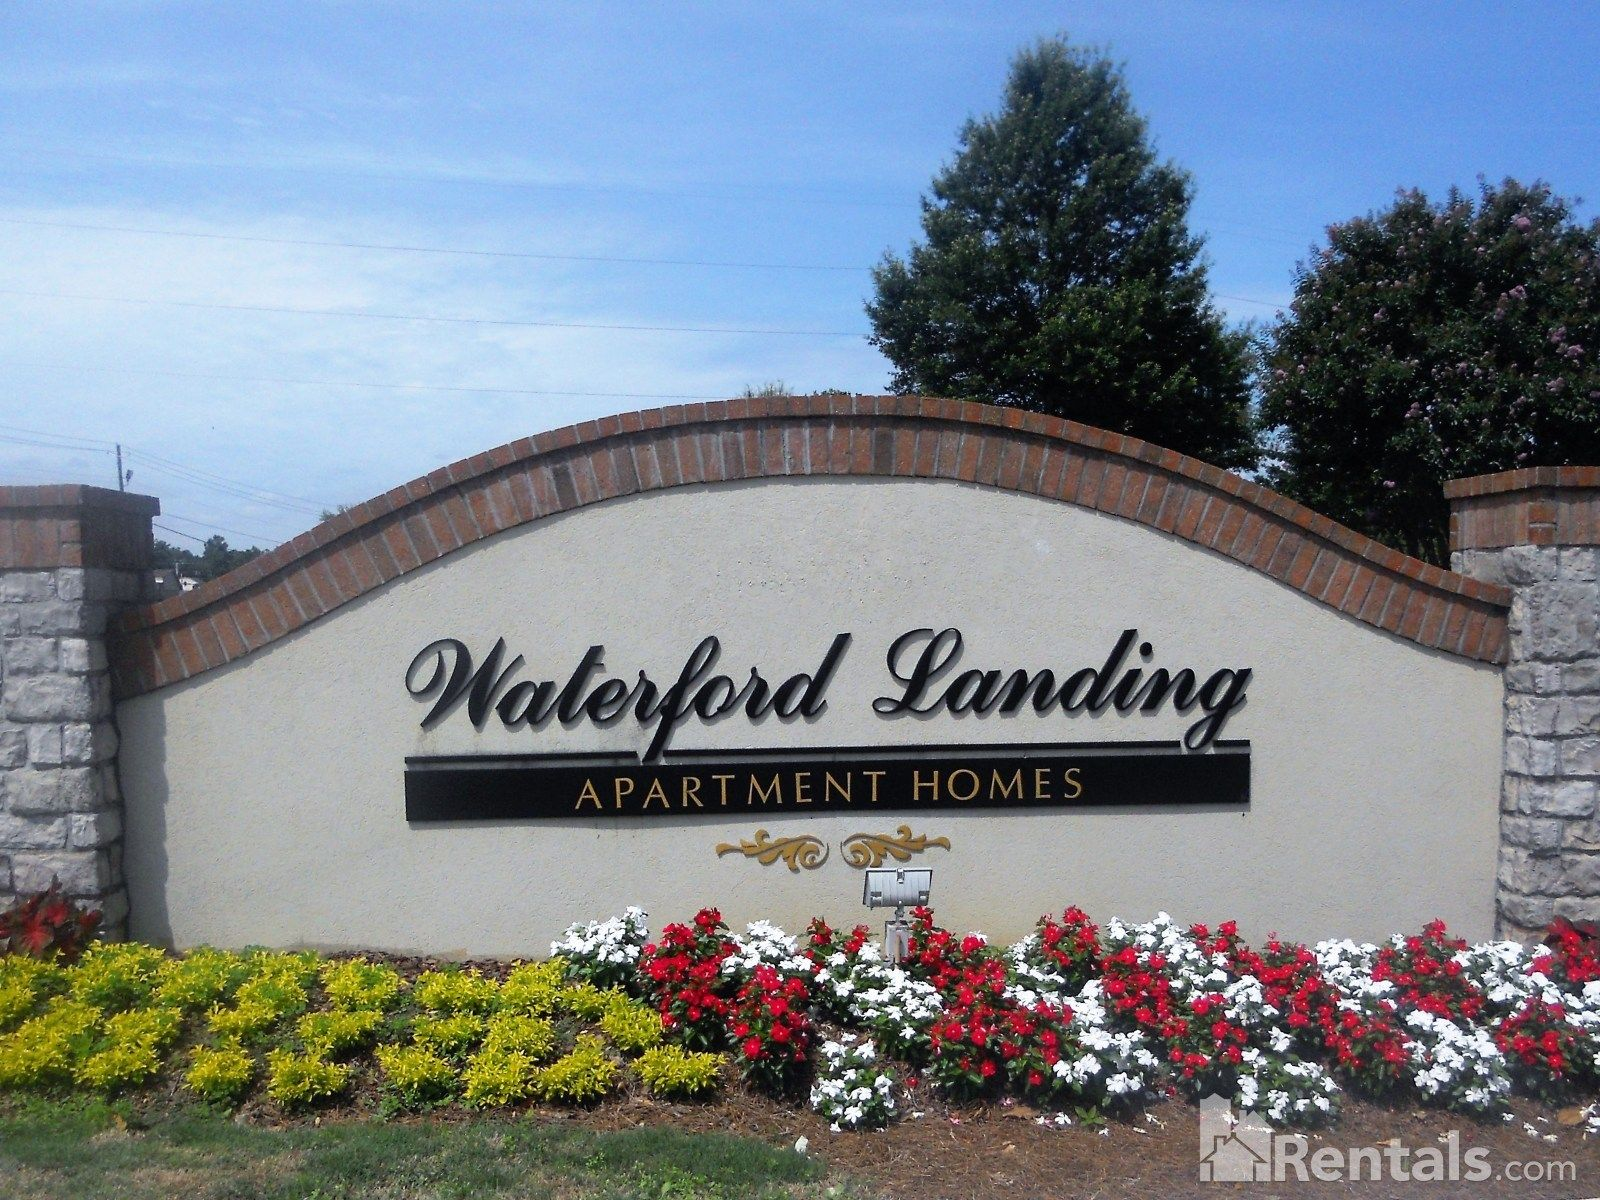 Waterford Landing Home Rentals Waterford Finding Apartments Apartments For Rent